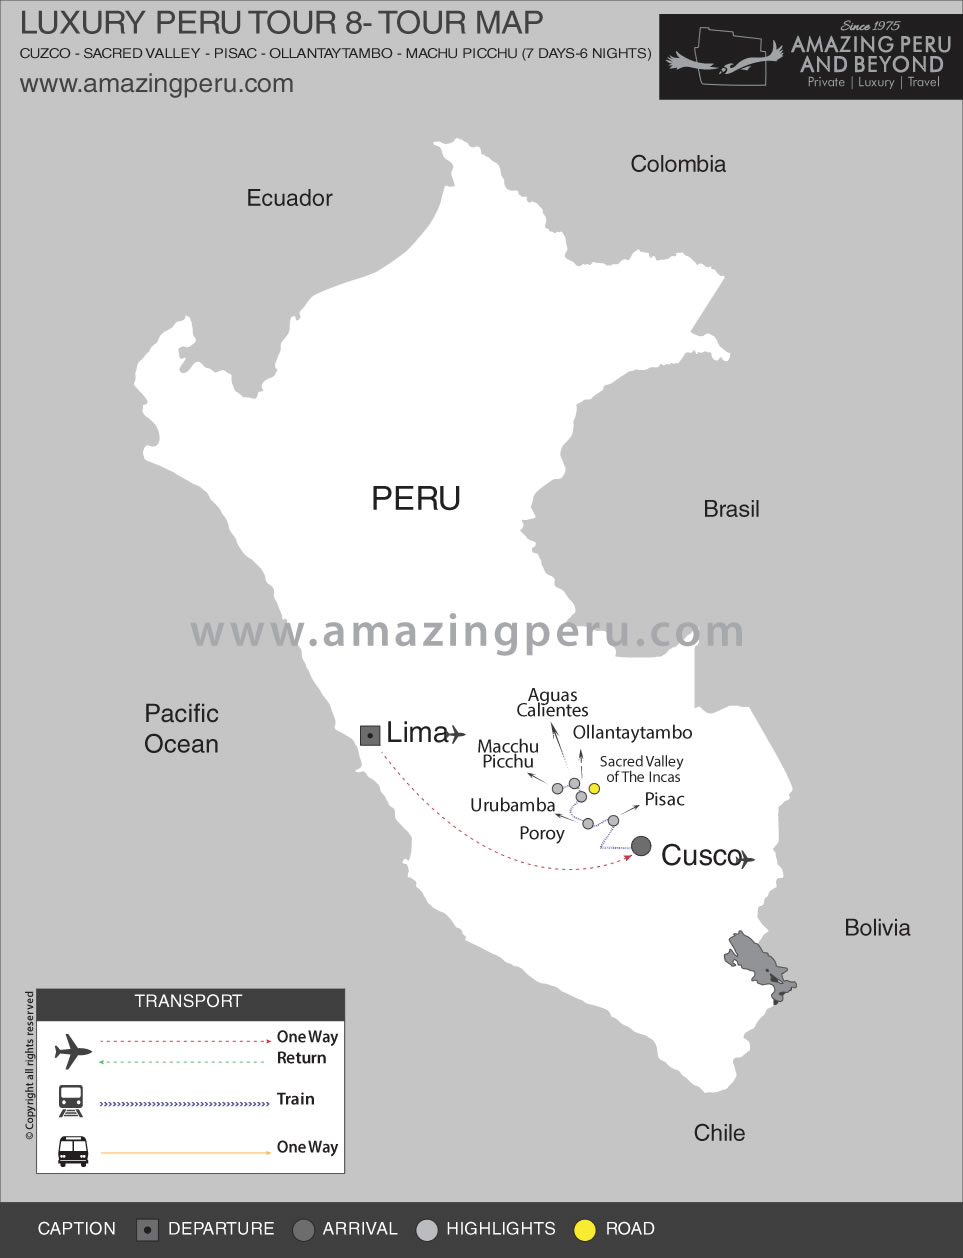 Luxury Peru Tour 8 - 7 days / 6 nights.